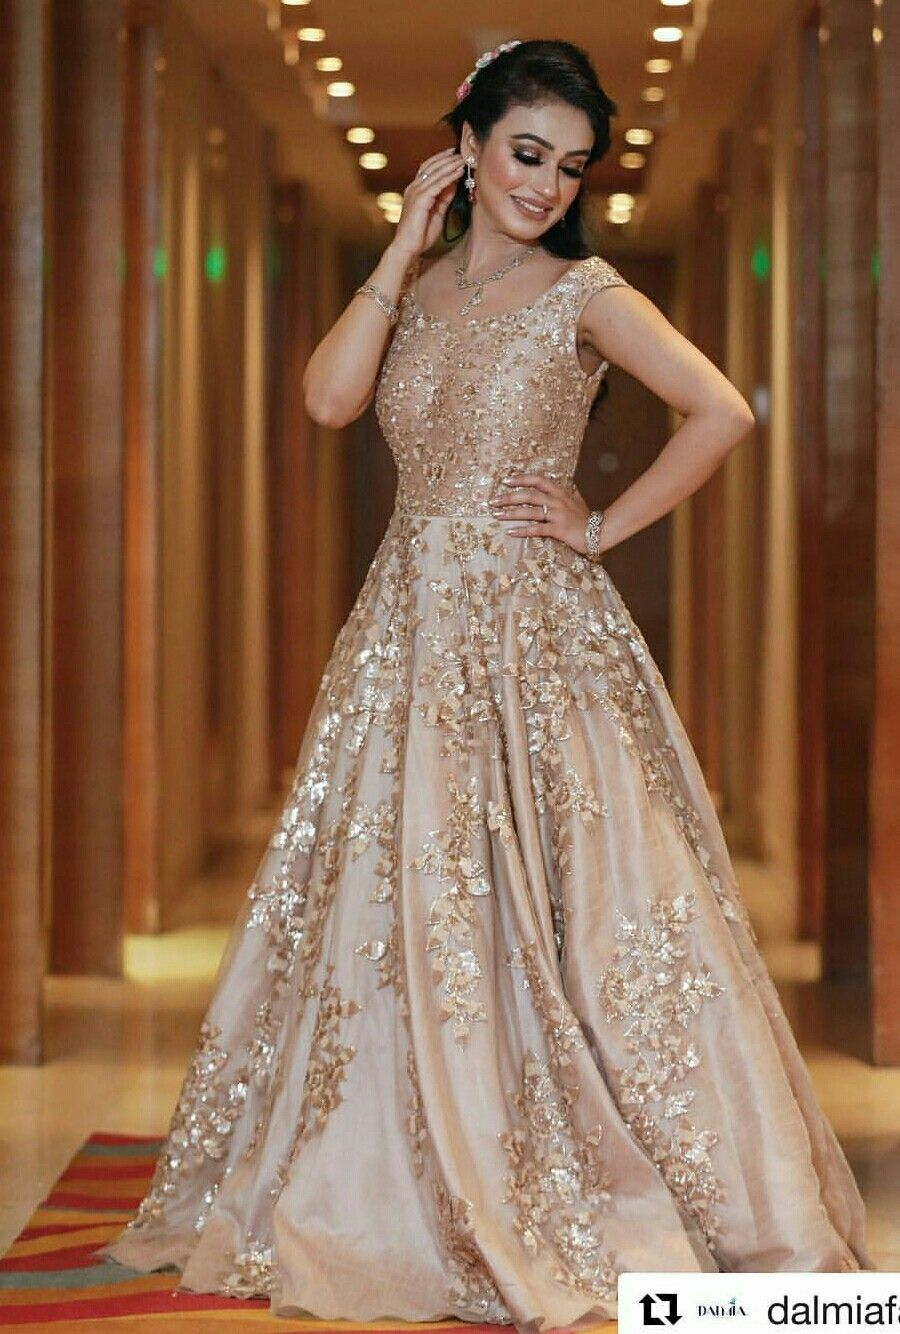 Latest Engagement Dresses For Bride Intended For Inspiration Wedding Ideas Makeit In 2020 Bride Reception Dresses Indian Wedding Gowns Indian Gowns Dresses